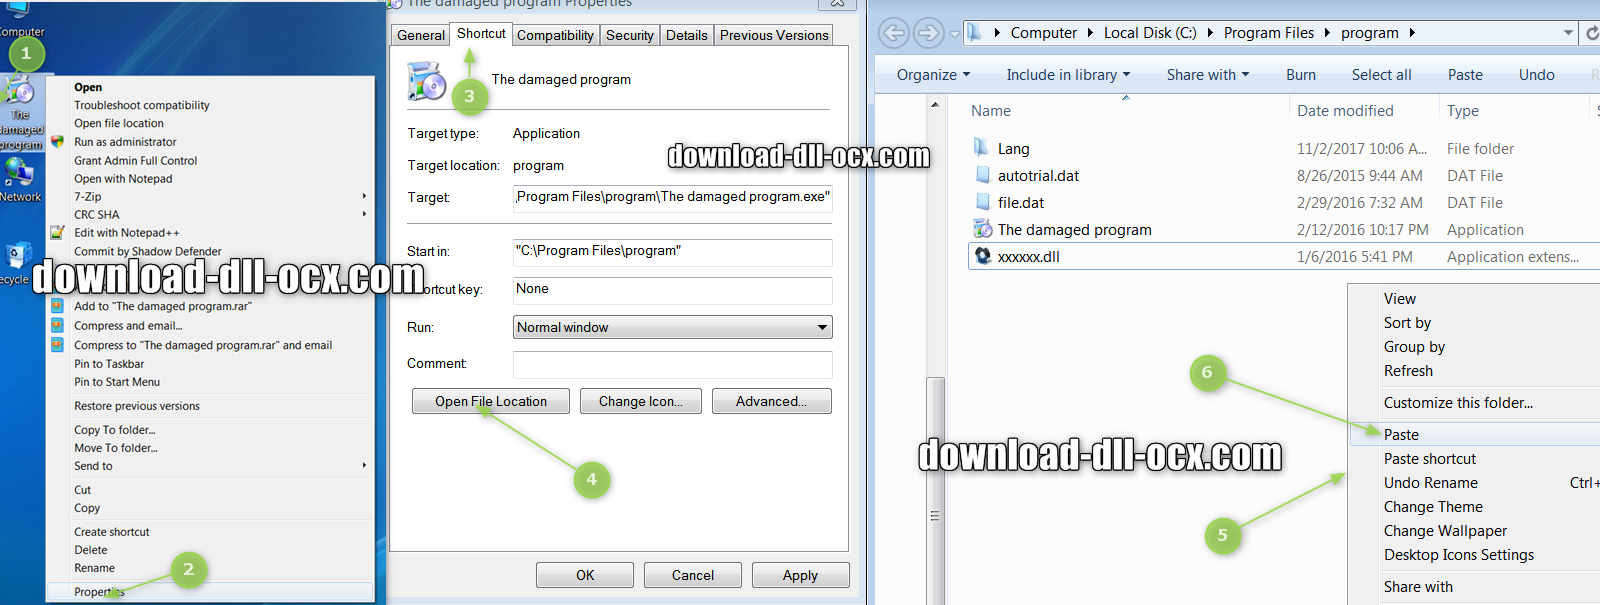 how to install Adobelmsvc Installer.dll file? for fix missing